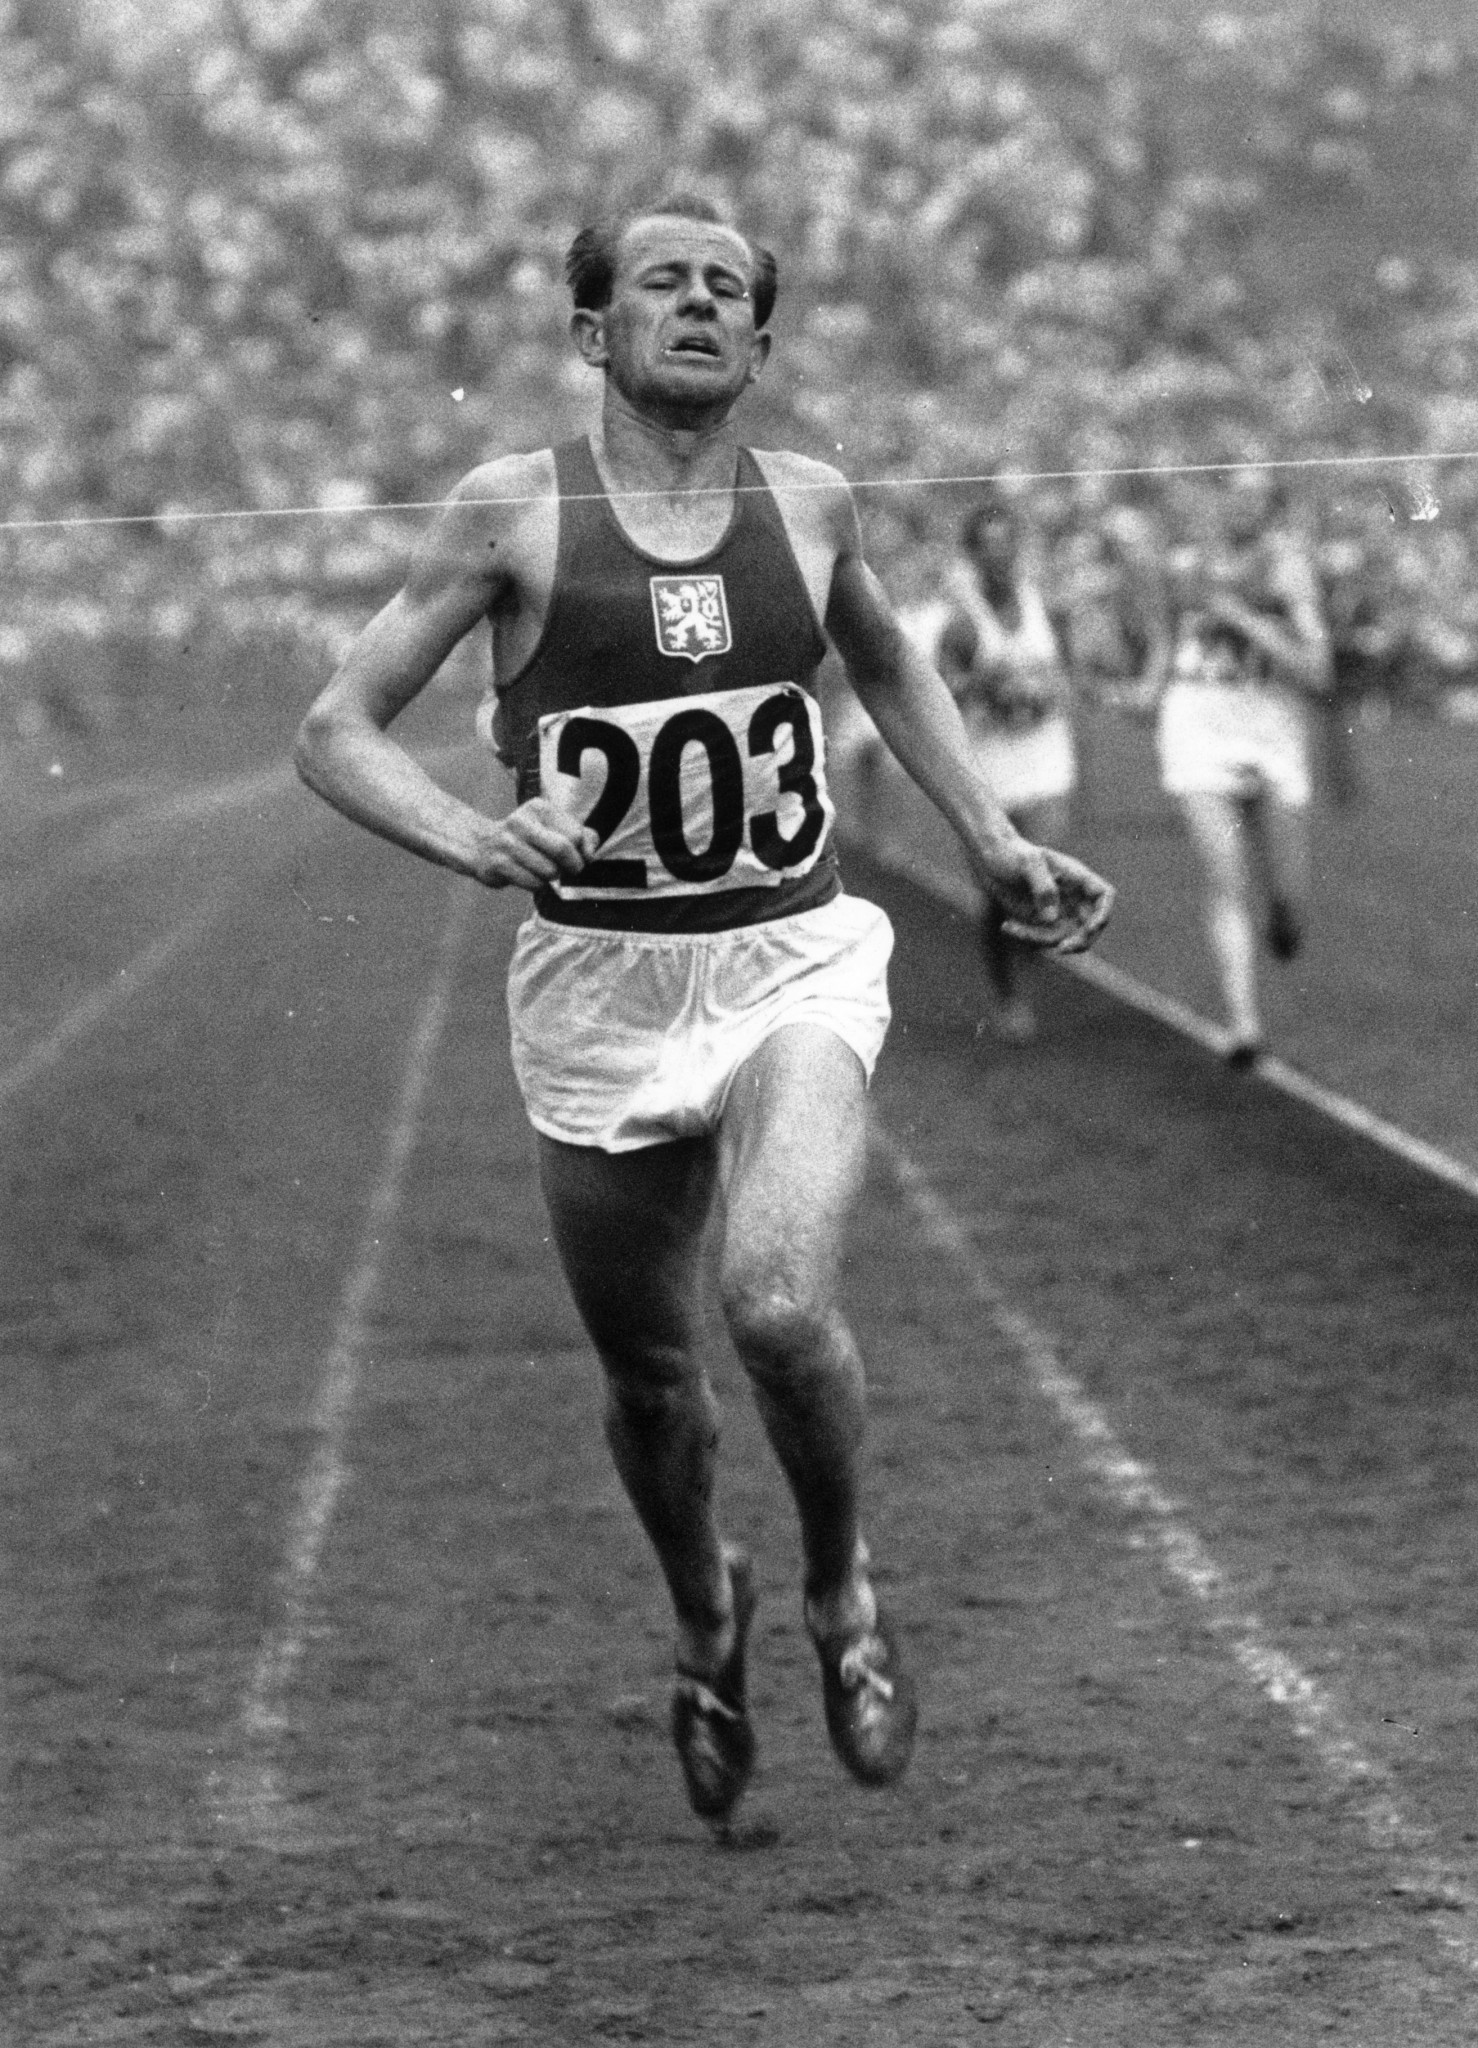 Czech runner Emil Zatopek wins 1500m at 1947 International University Games. ©Keystone/Getty Images